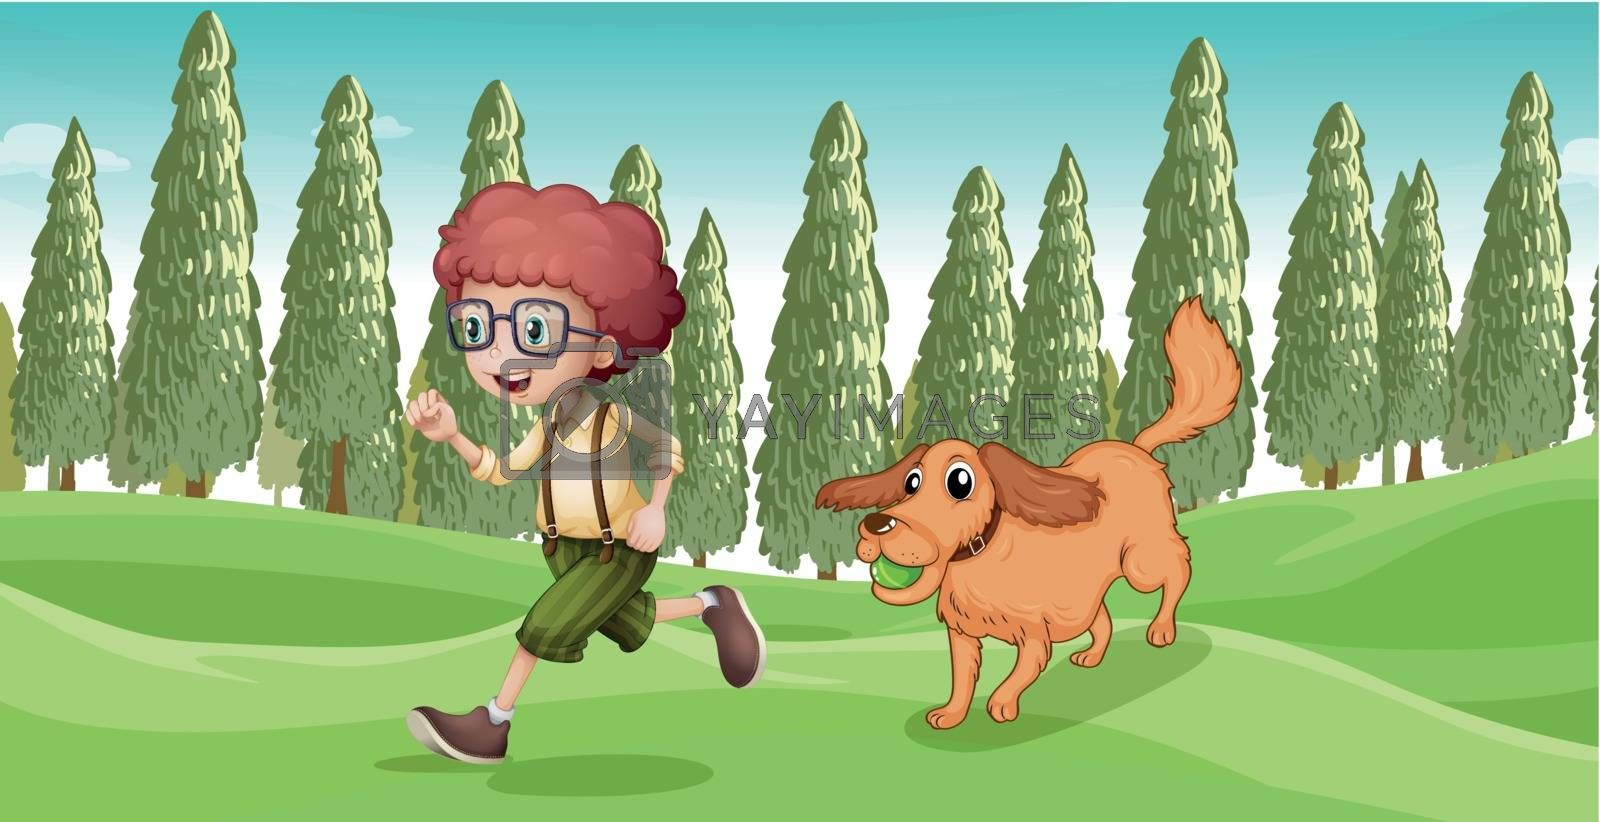 Illustration of a boy and his dog playing at the park